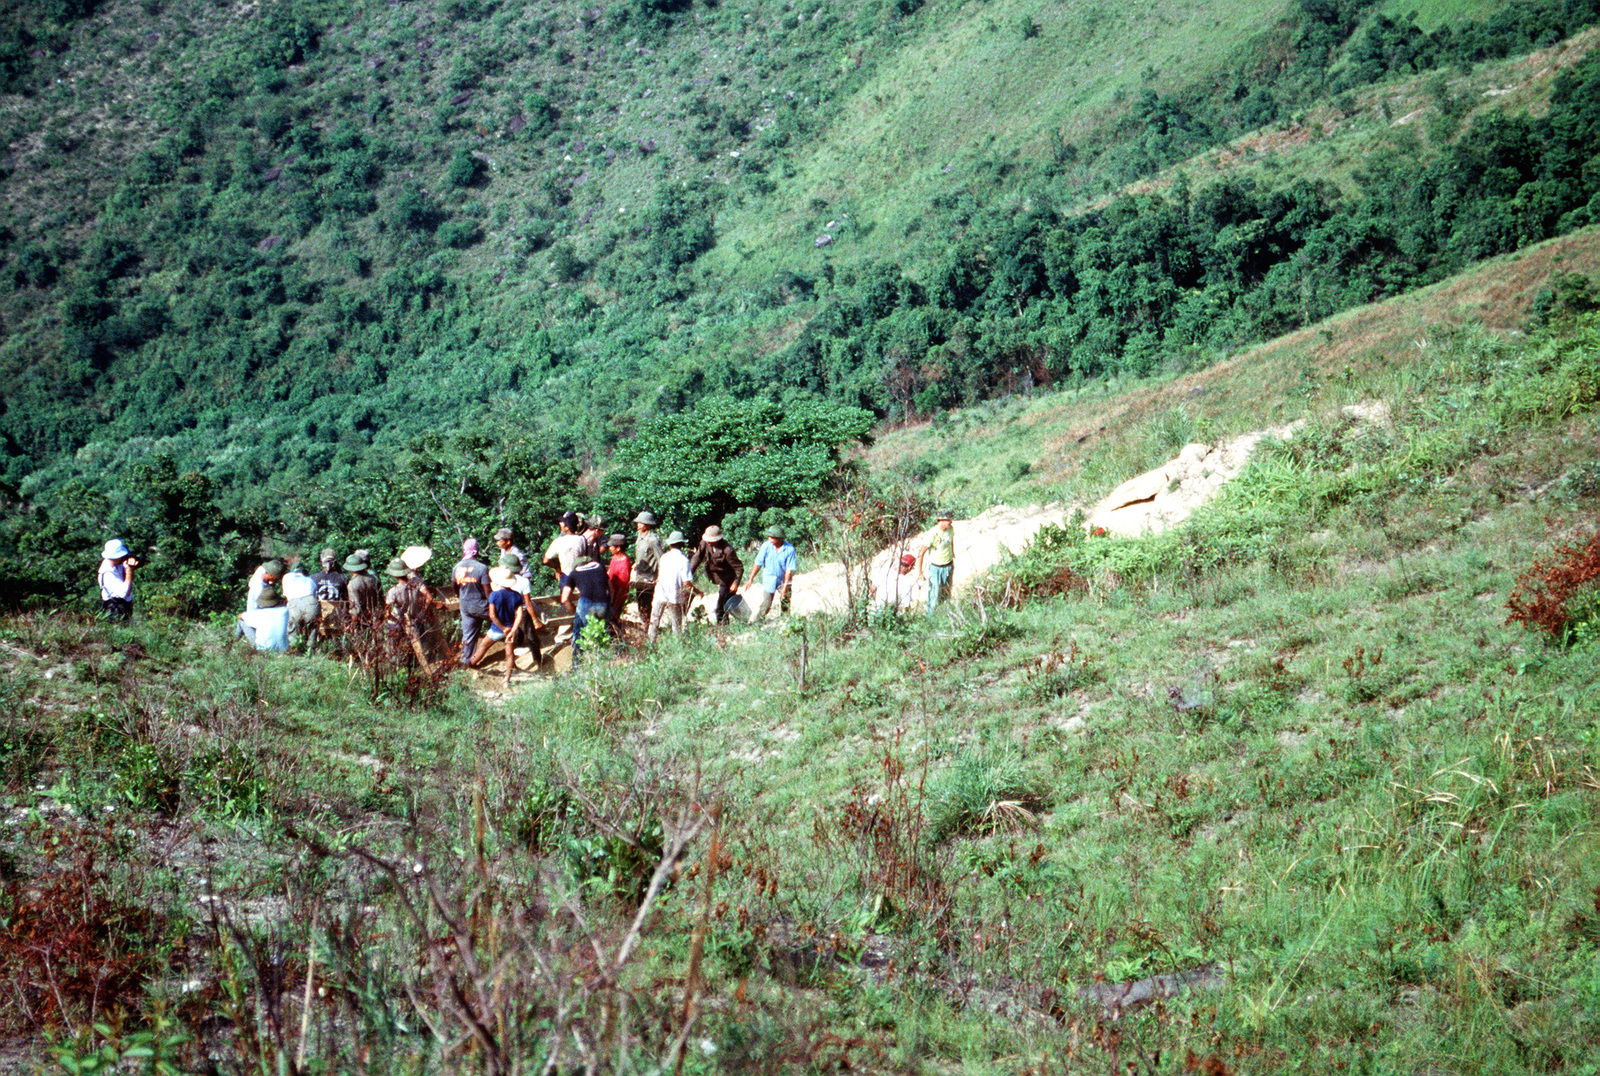 Members of the media as well as representatives of the Joint Combat Casualty Center and members of a joint U.S./Vietnamese anthropological team gather on Dong Nua Mountain, Quang Binh Province, as they discuss search efforts being conducted at the site. The anthropological team is conducting the project in an effort to locate remains of an American pilot whose A-7 Corsair II aircraft crashed while flying a mission during the war in Vietnam.